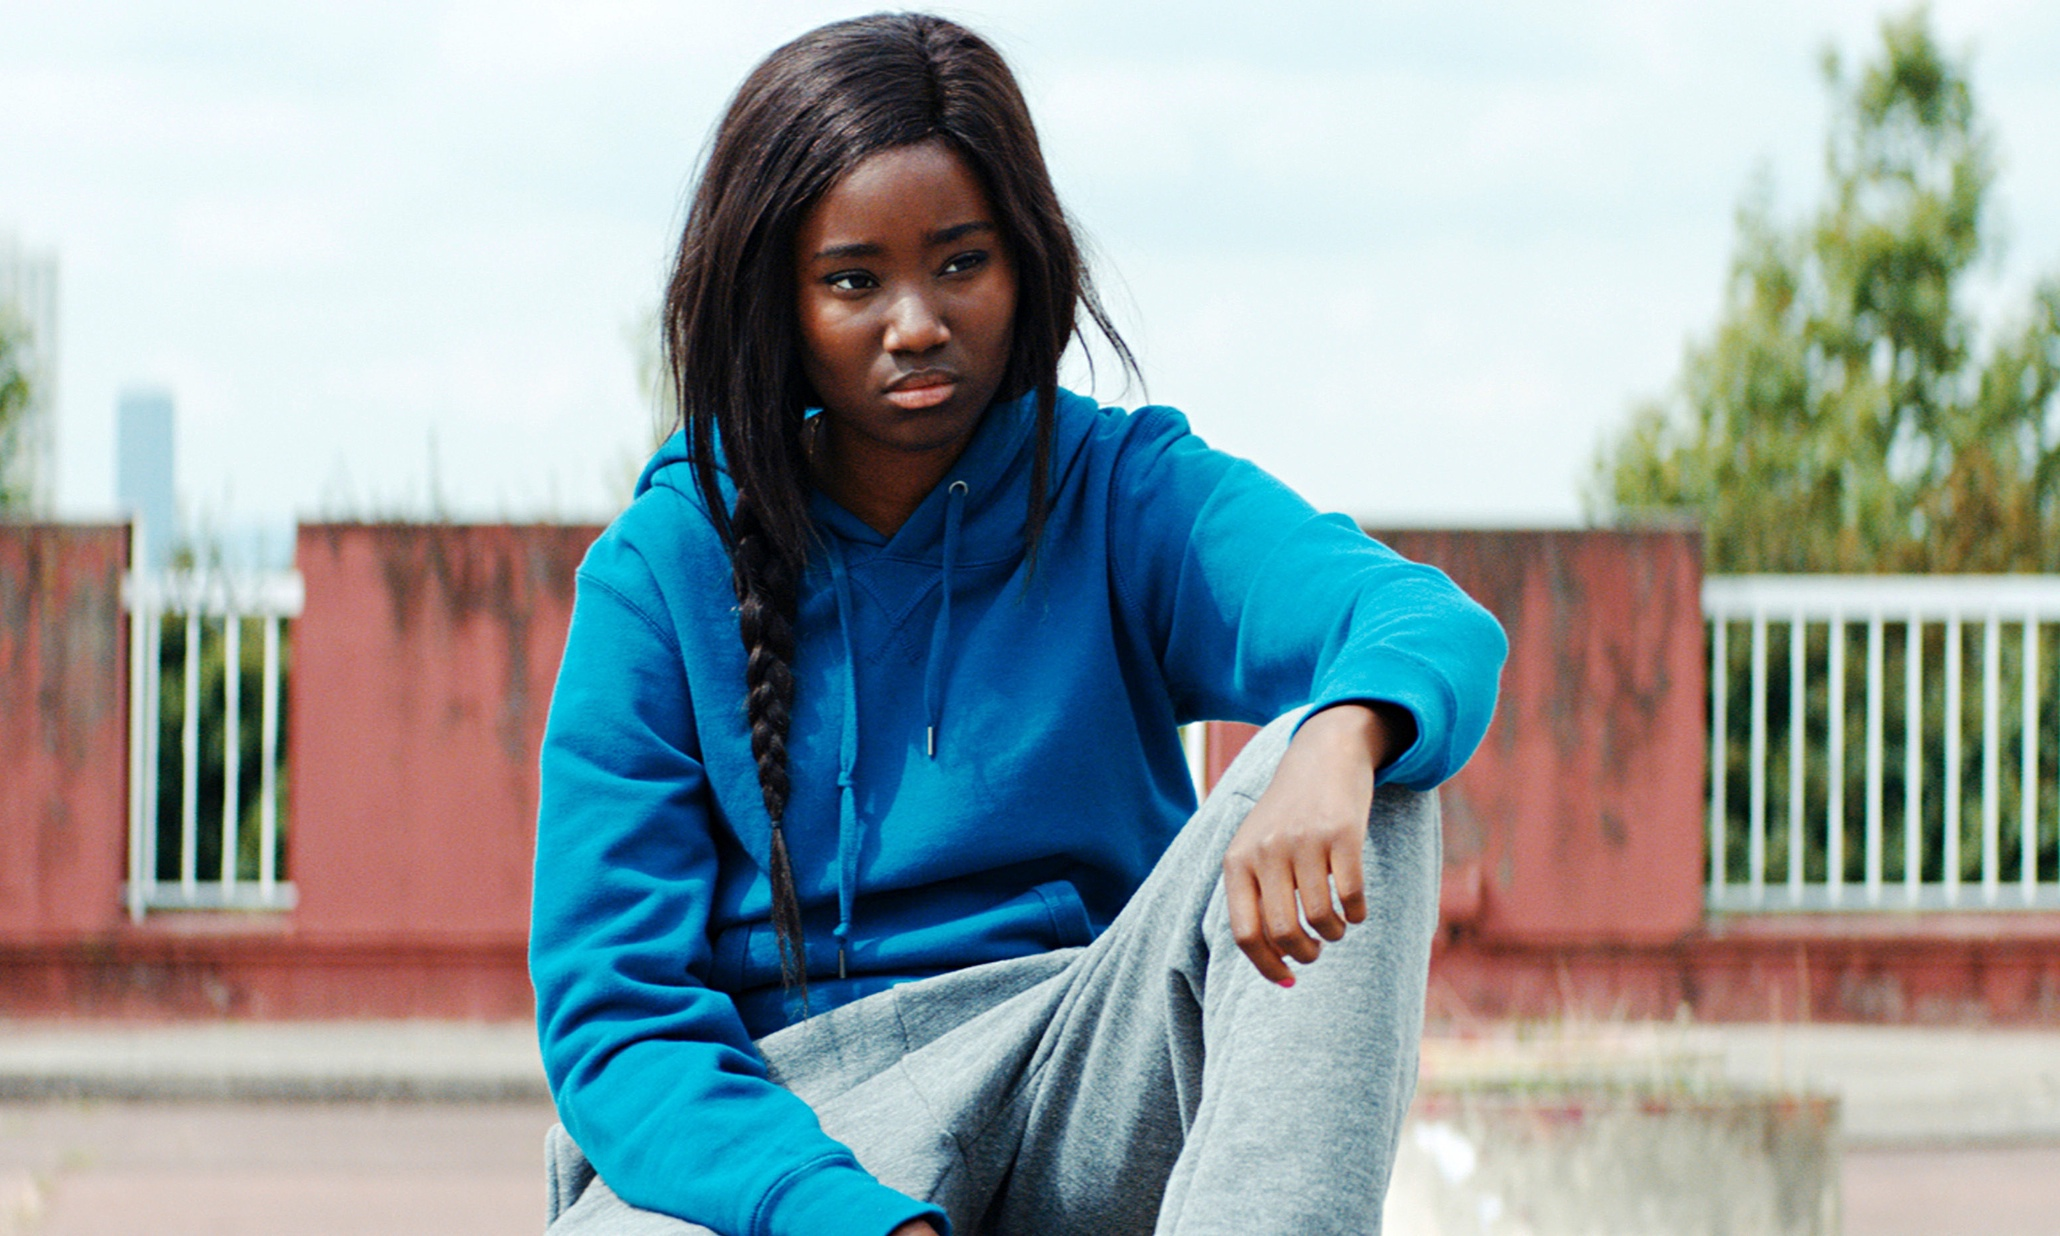 Coming-of-age film Girlhood